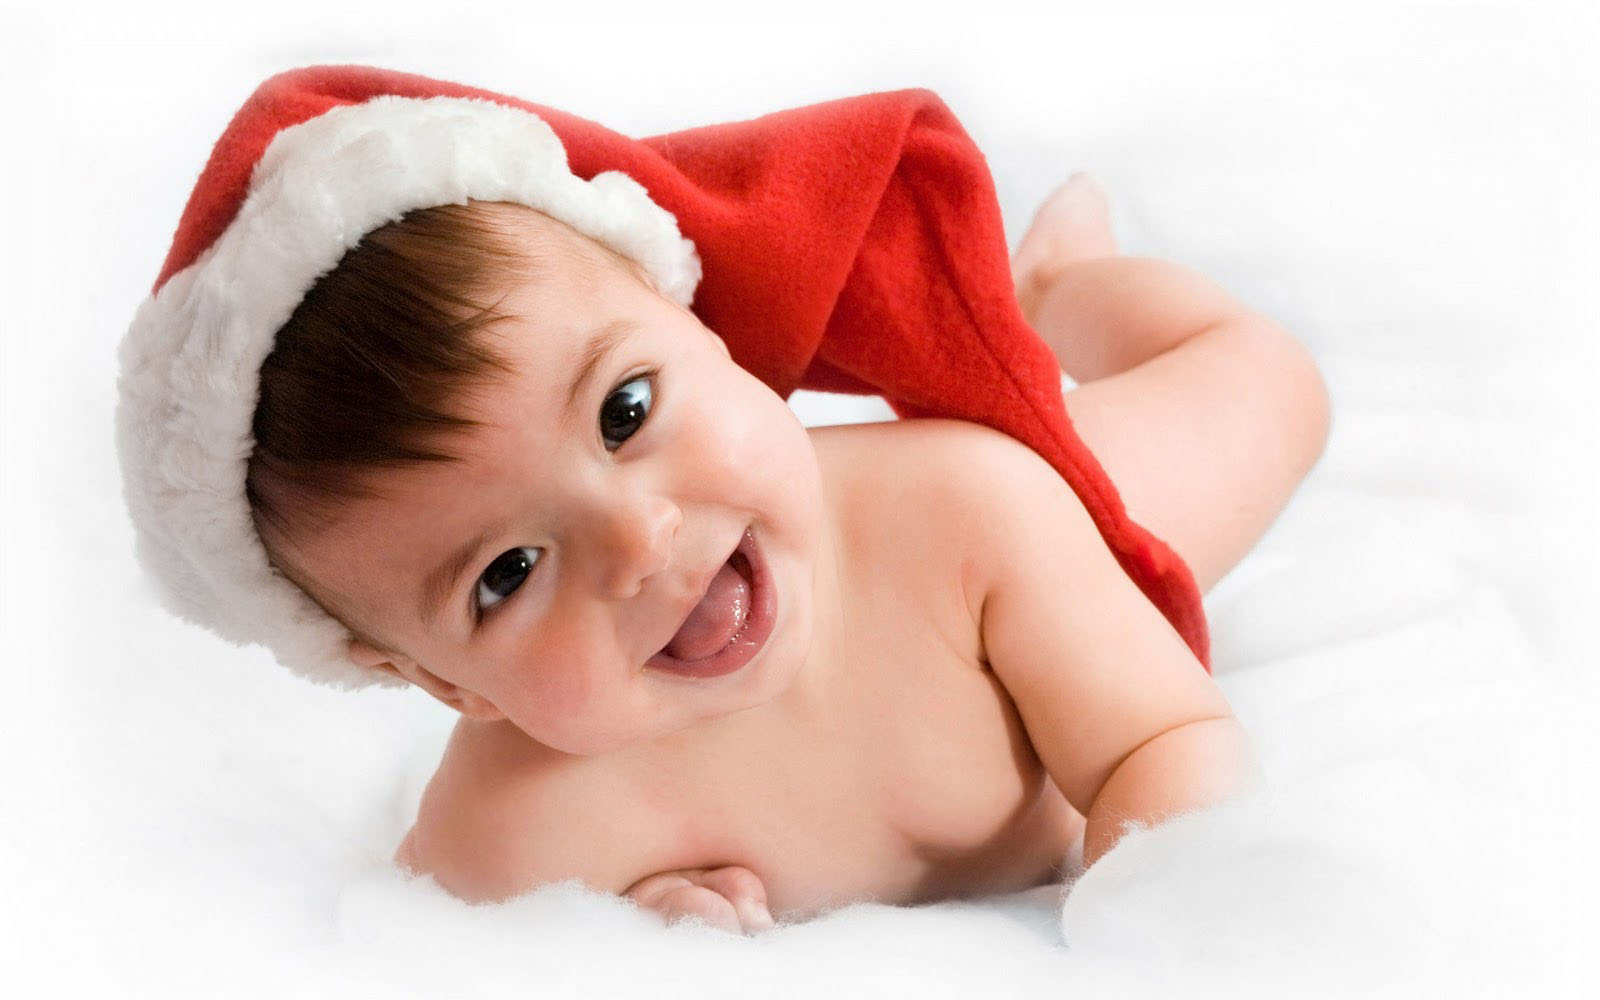 pic of babies wallpaper - wallpapersafari